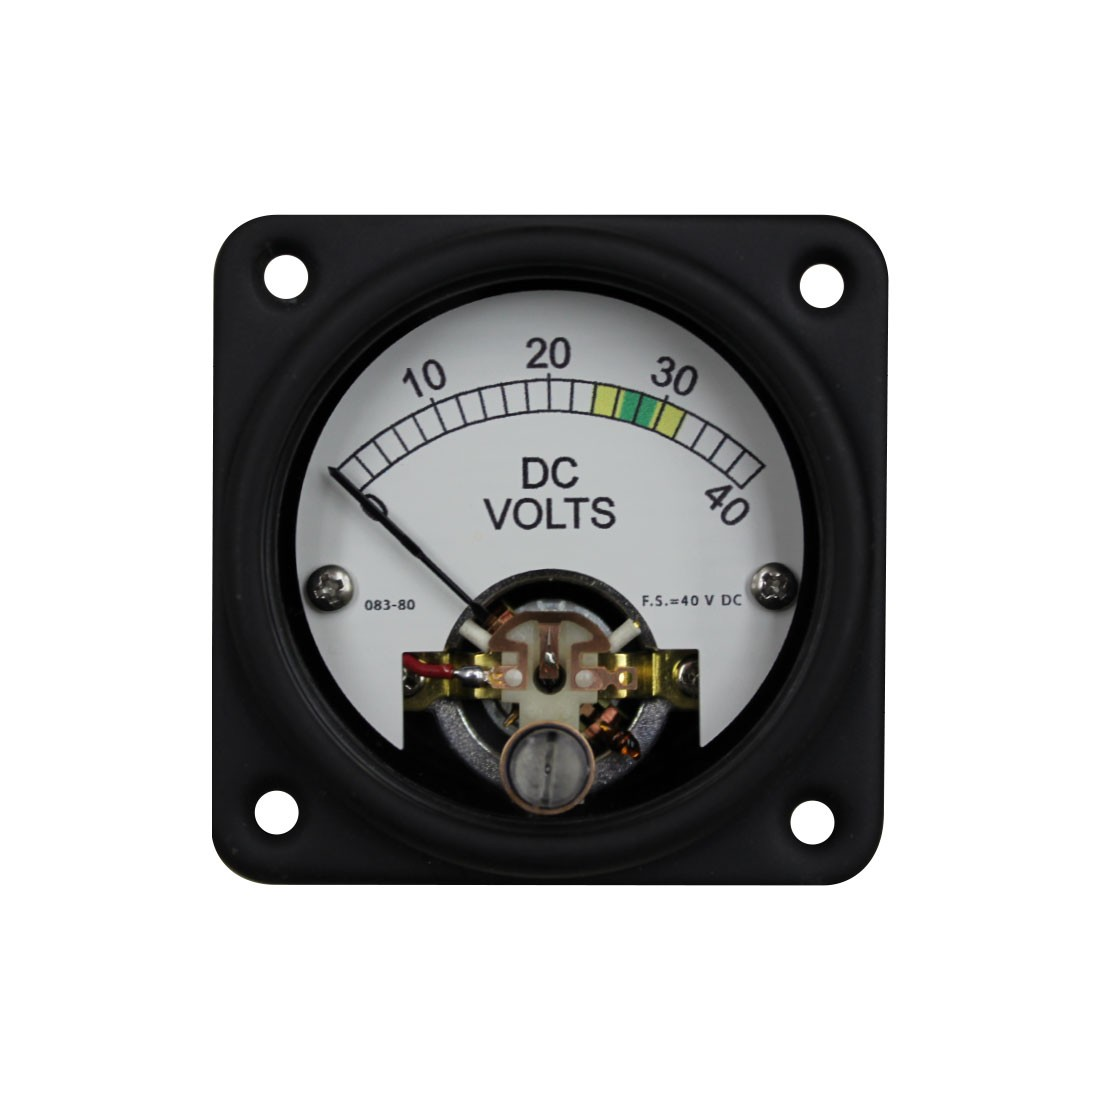 635MM AC DC Sealed Analog Meter - Front View